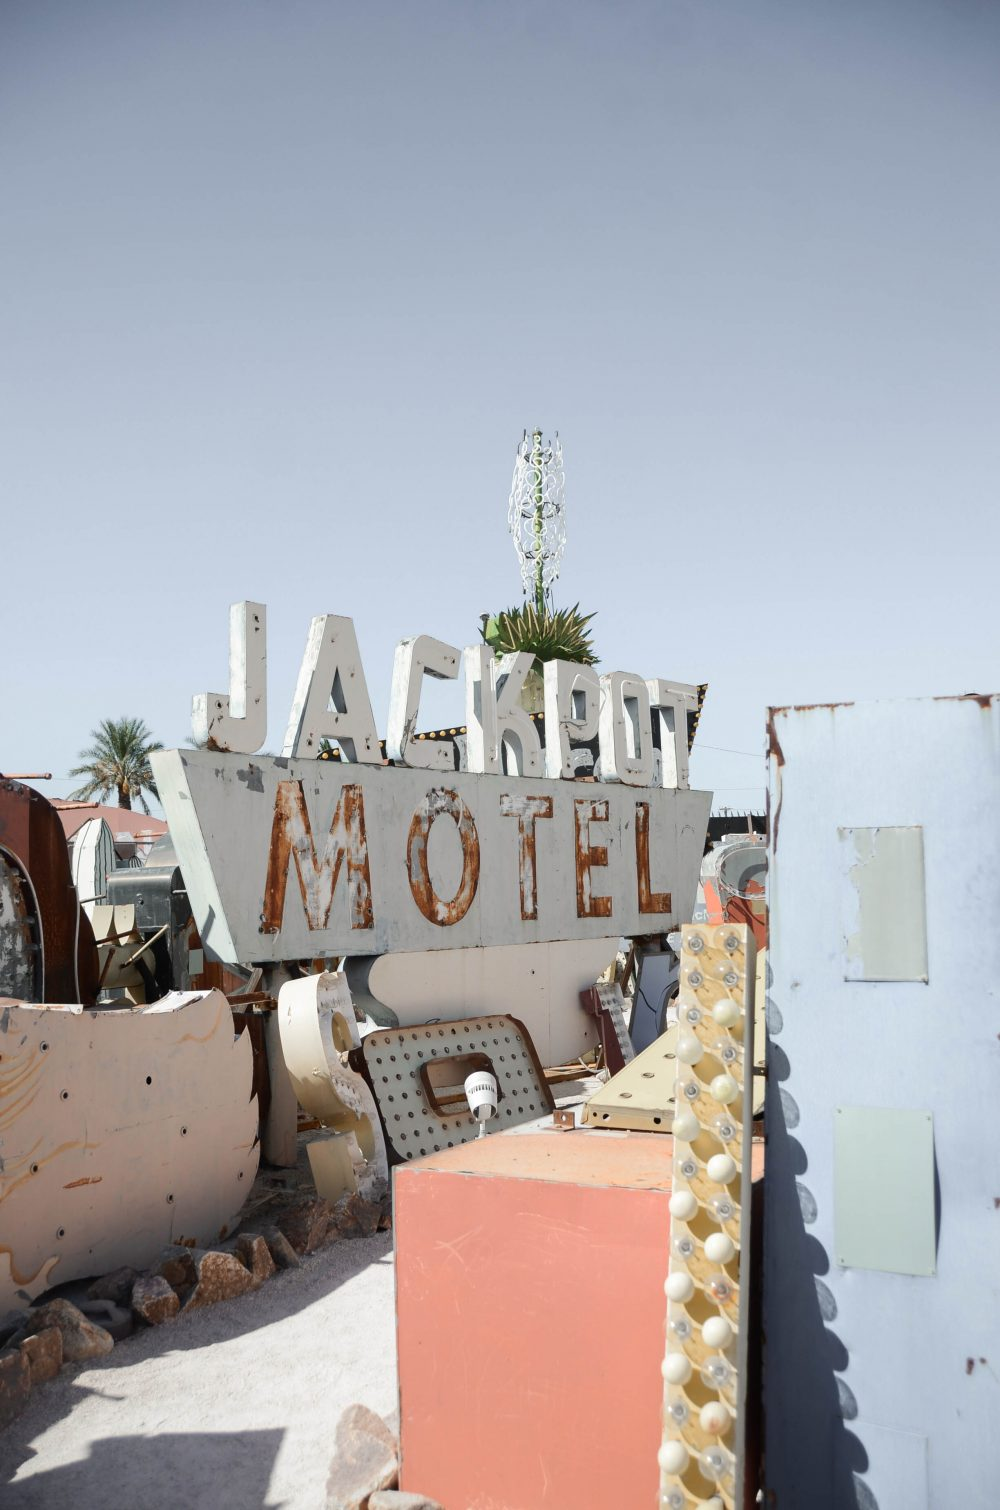 Las Vegas Neon Museum / Boneyard | Things to do and see in Las Vegas, Nevada | Photo by Creative Wife and Joyful Worker